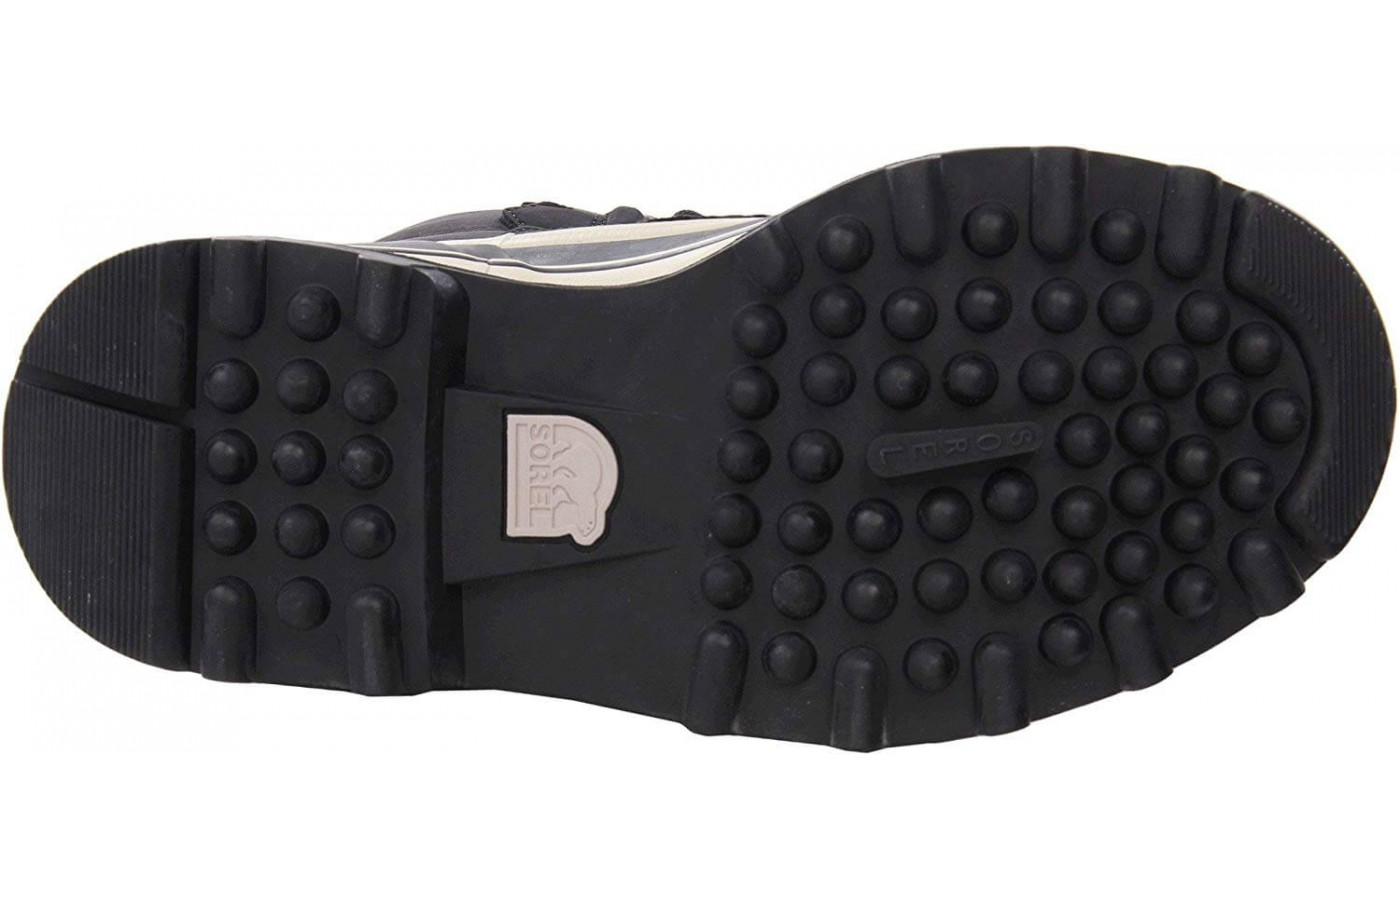 The bottom of the outsole of this boot is designed to keep you crunching through snow safety and effectively.